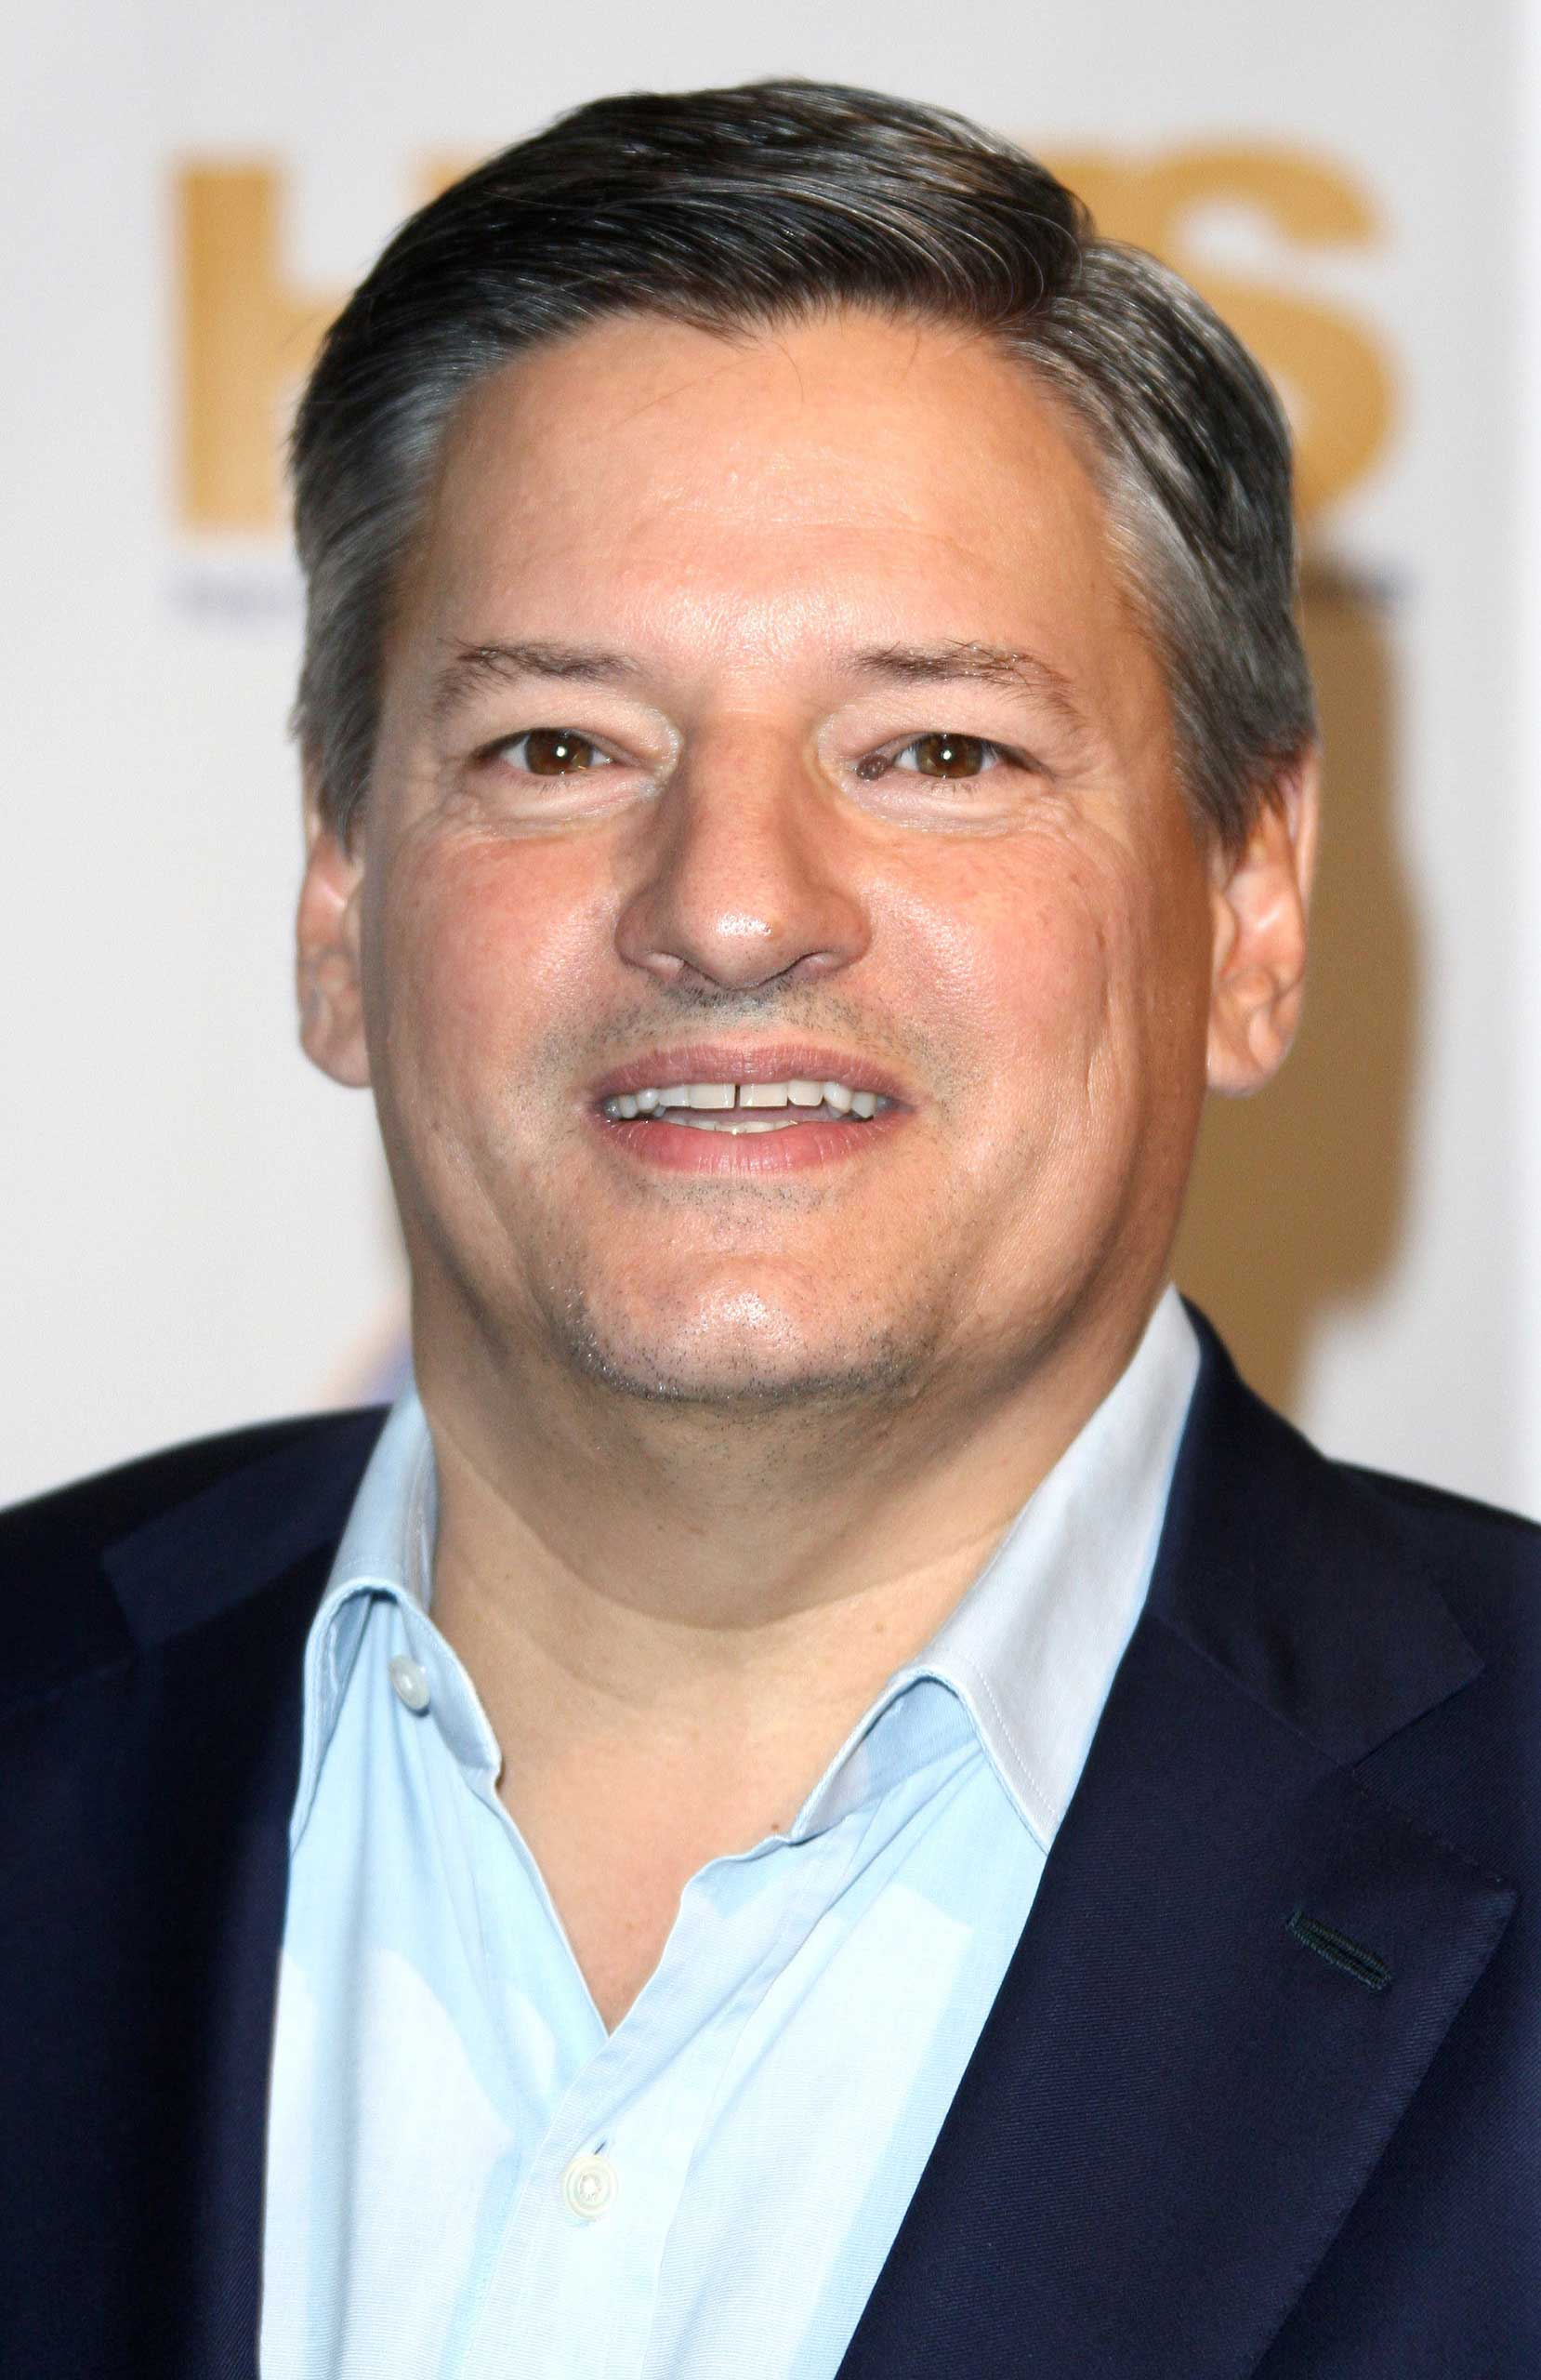 Chief Content Officer, Netflix Ted Sarandos attends the Hollywood Radio and Television Society State Of The Industry Luncheon held at The Beverly Hilton Hotel in Beverly Hills, California, on Oct. 15, 2015.